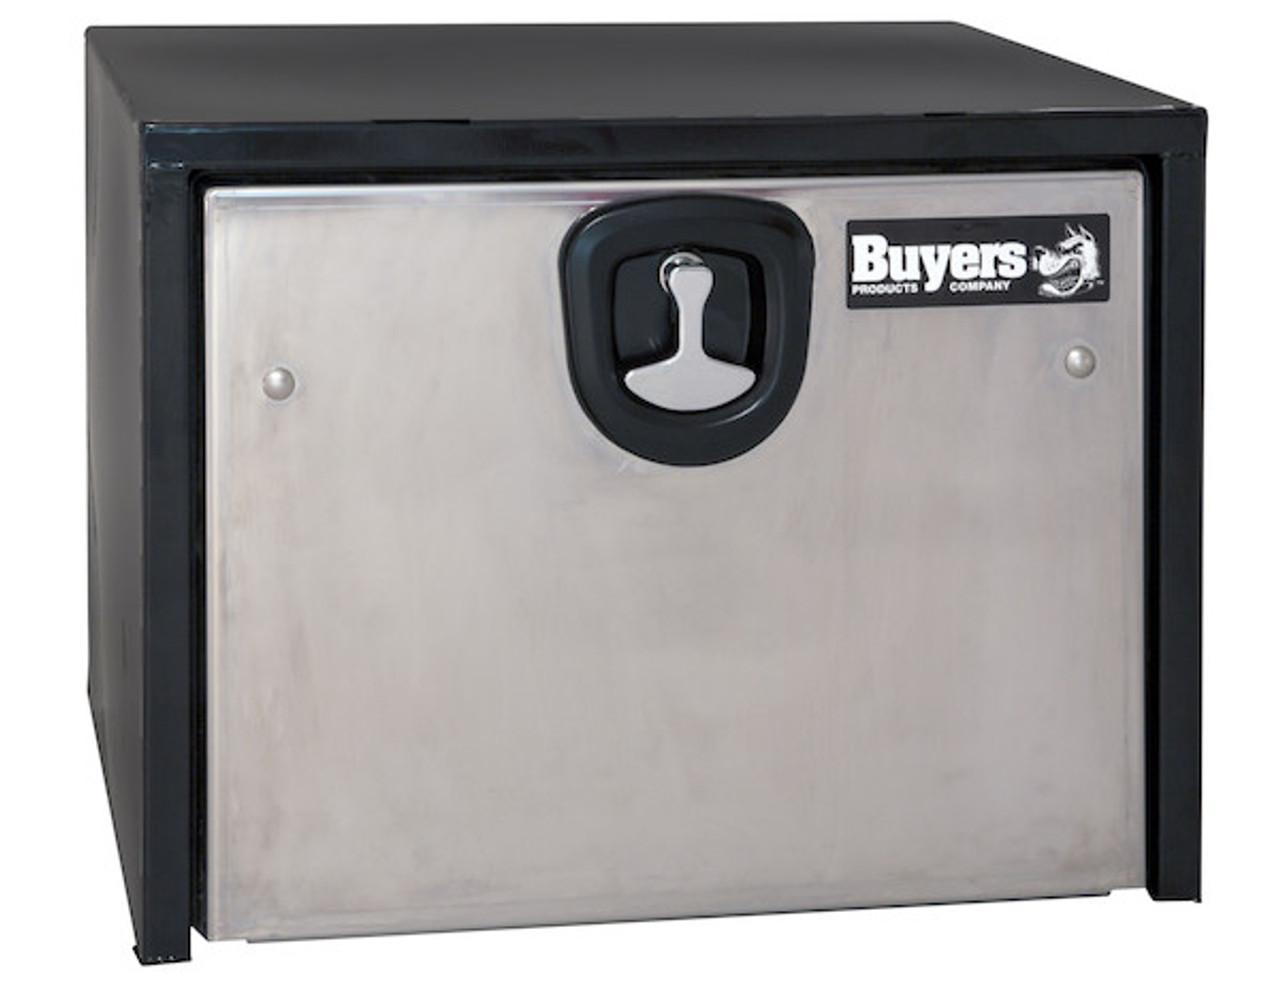 """1703700 BUYERS PRODUCTS BLACK STEEL UNDERBODY TRUCK TOOLBOX WITH STAINLESS STEEL DOOR 14""""HX16""""DX24""""W"""